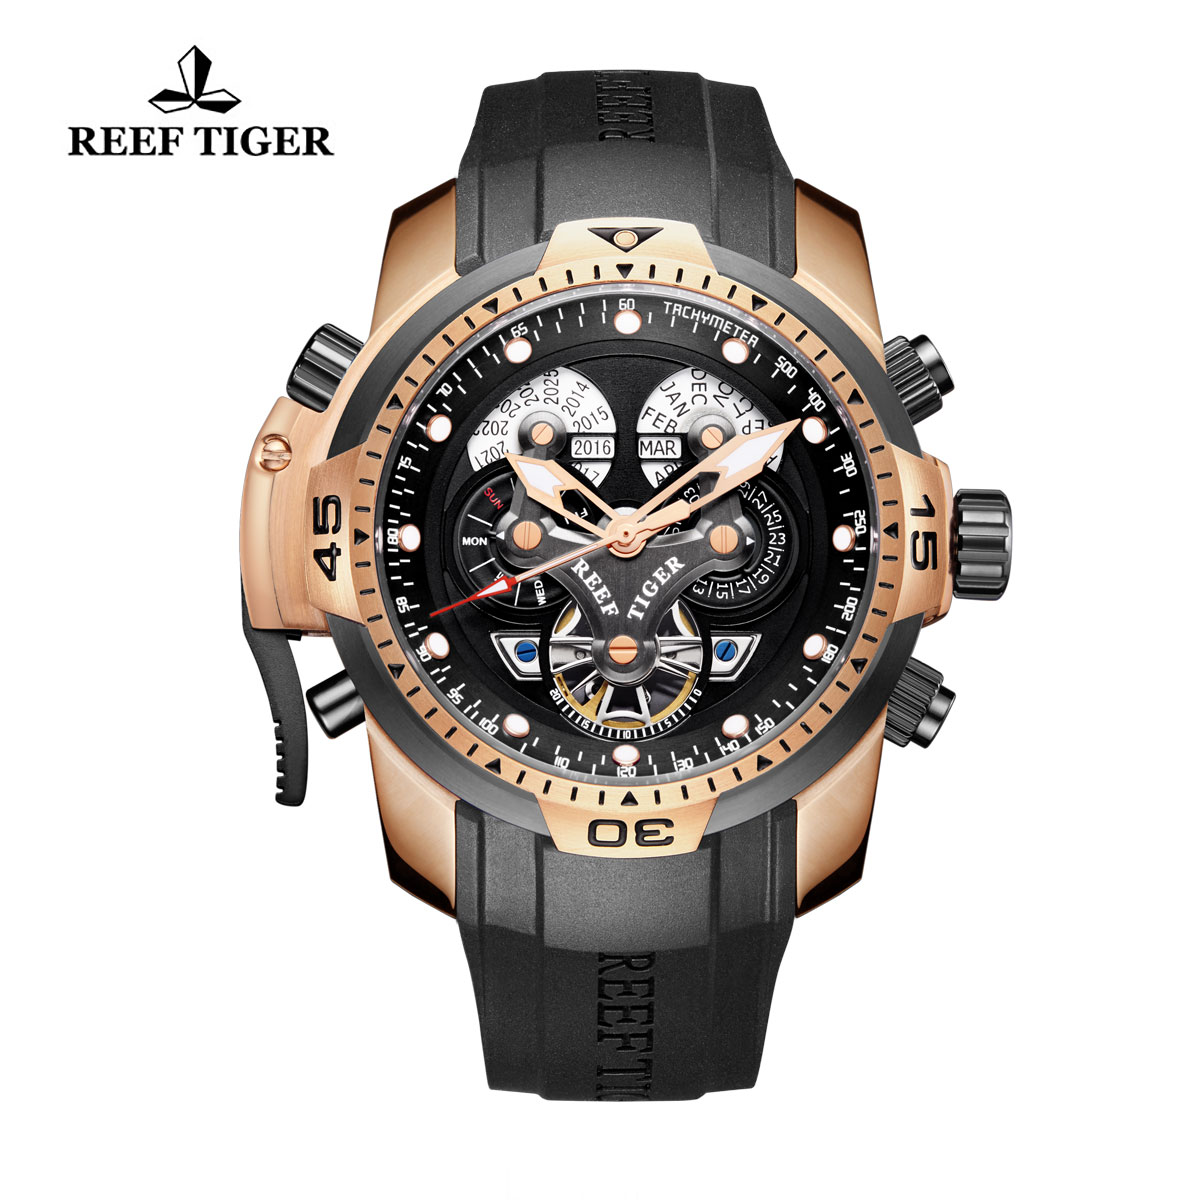 Reef Tiger Concept Sport Watches Automatic Watch Black Case Black Rubber RGA3503-PBBB